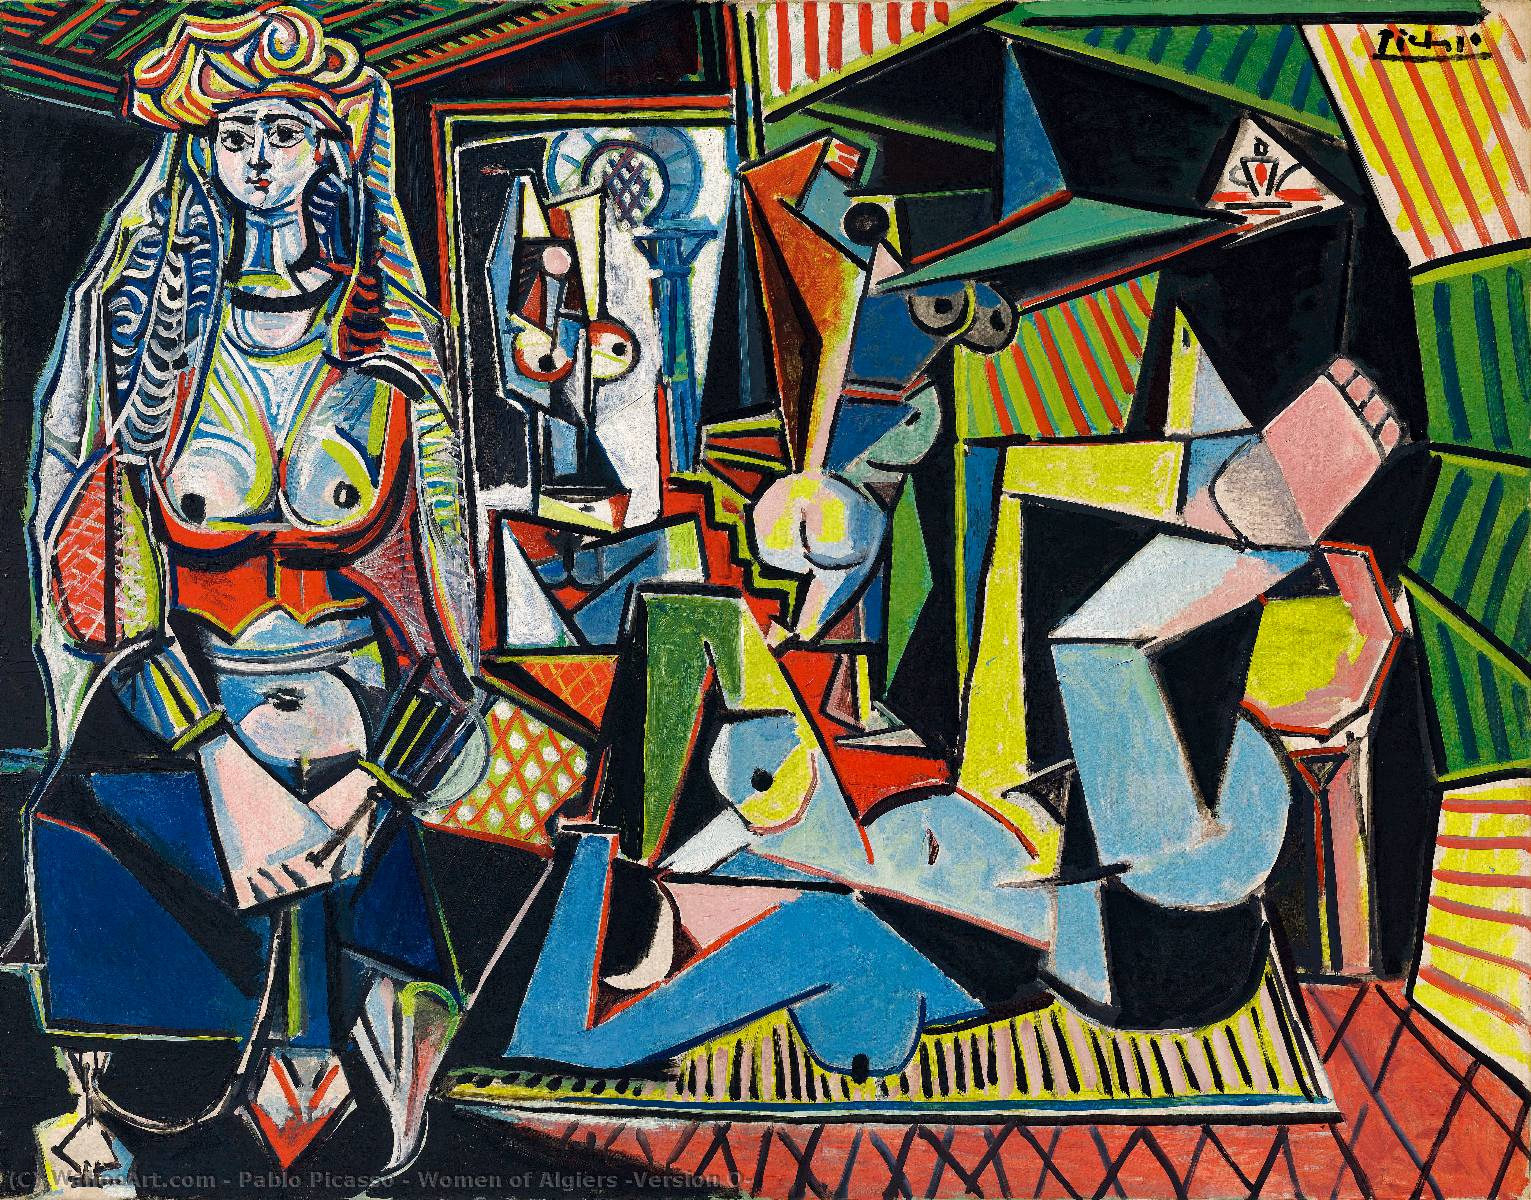 | donne di algeri ( versione o ) di Pablo Picasso | Most-Famous-Paintings.com